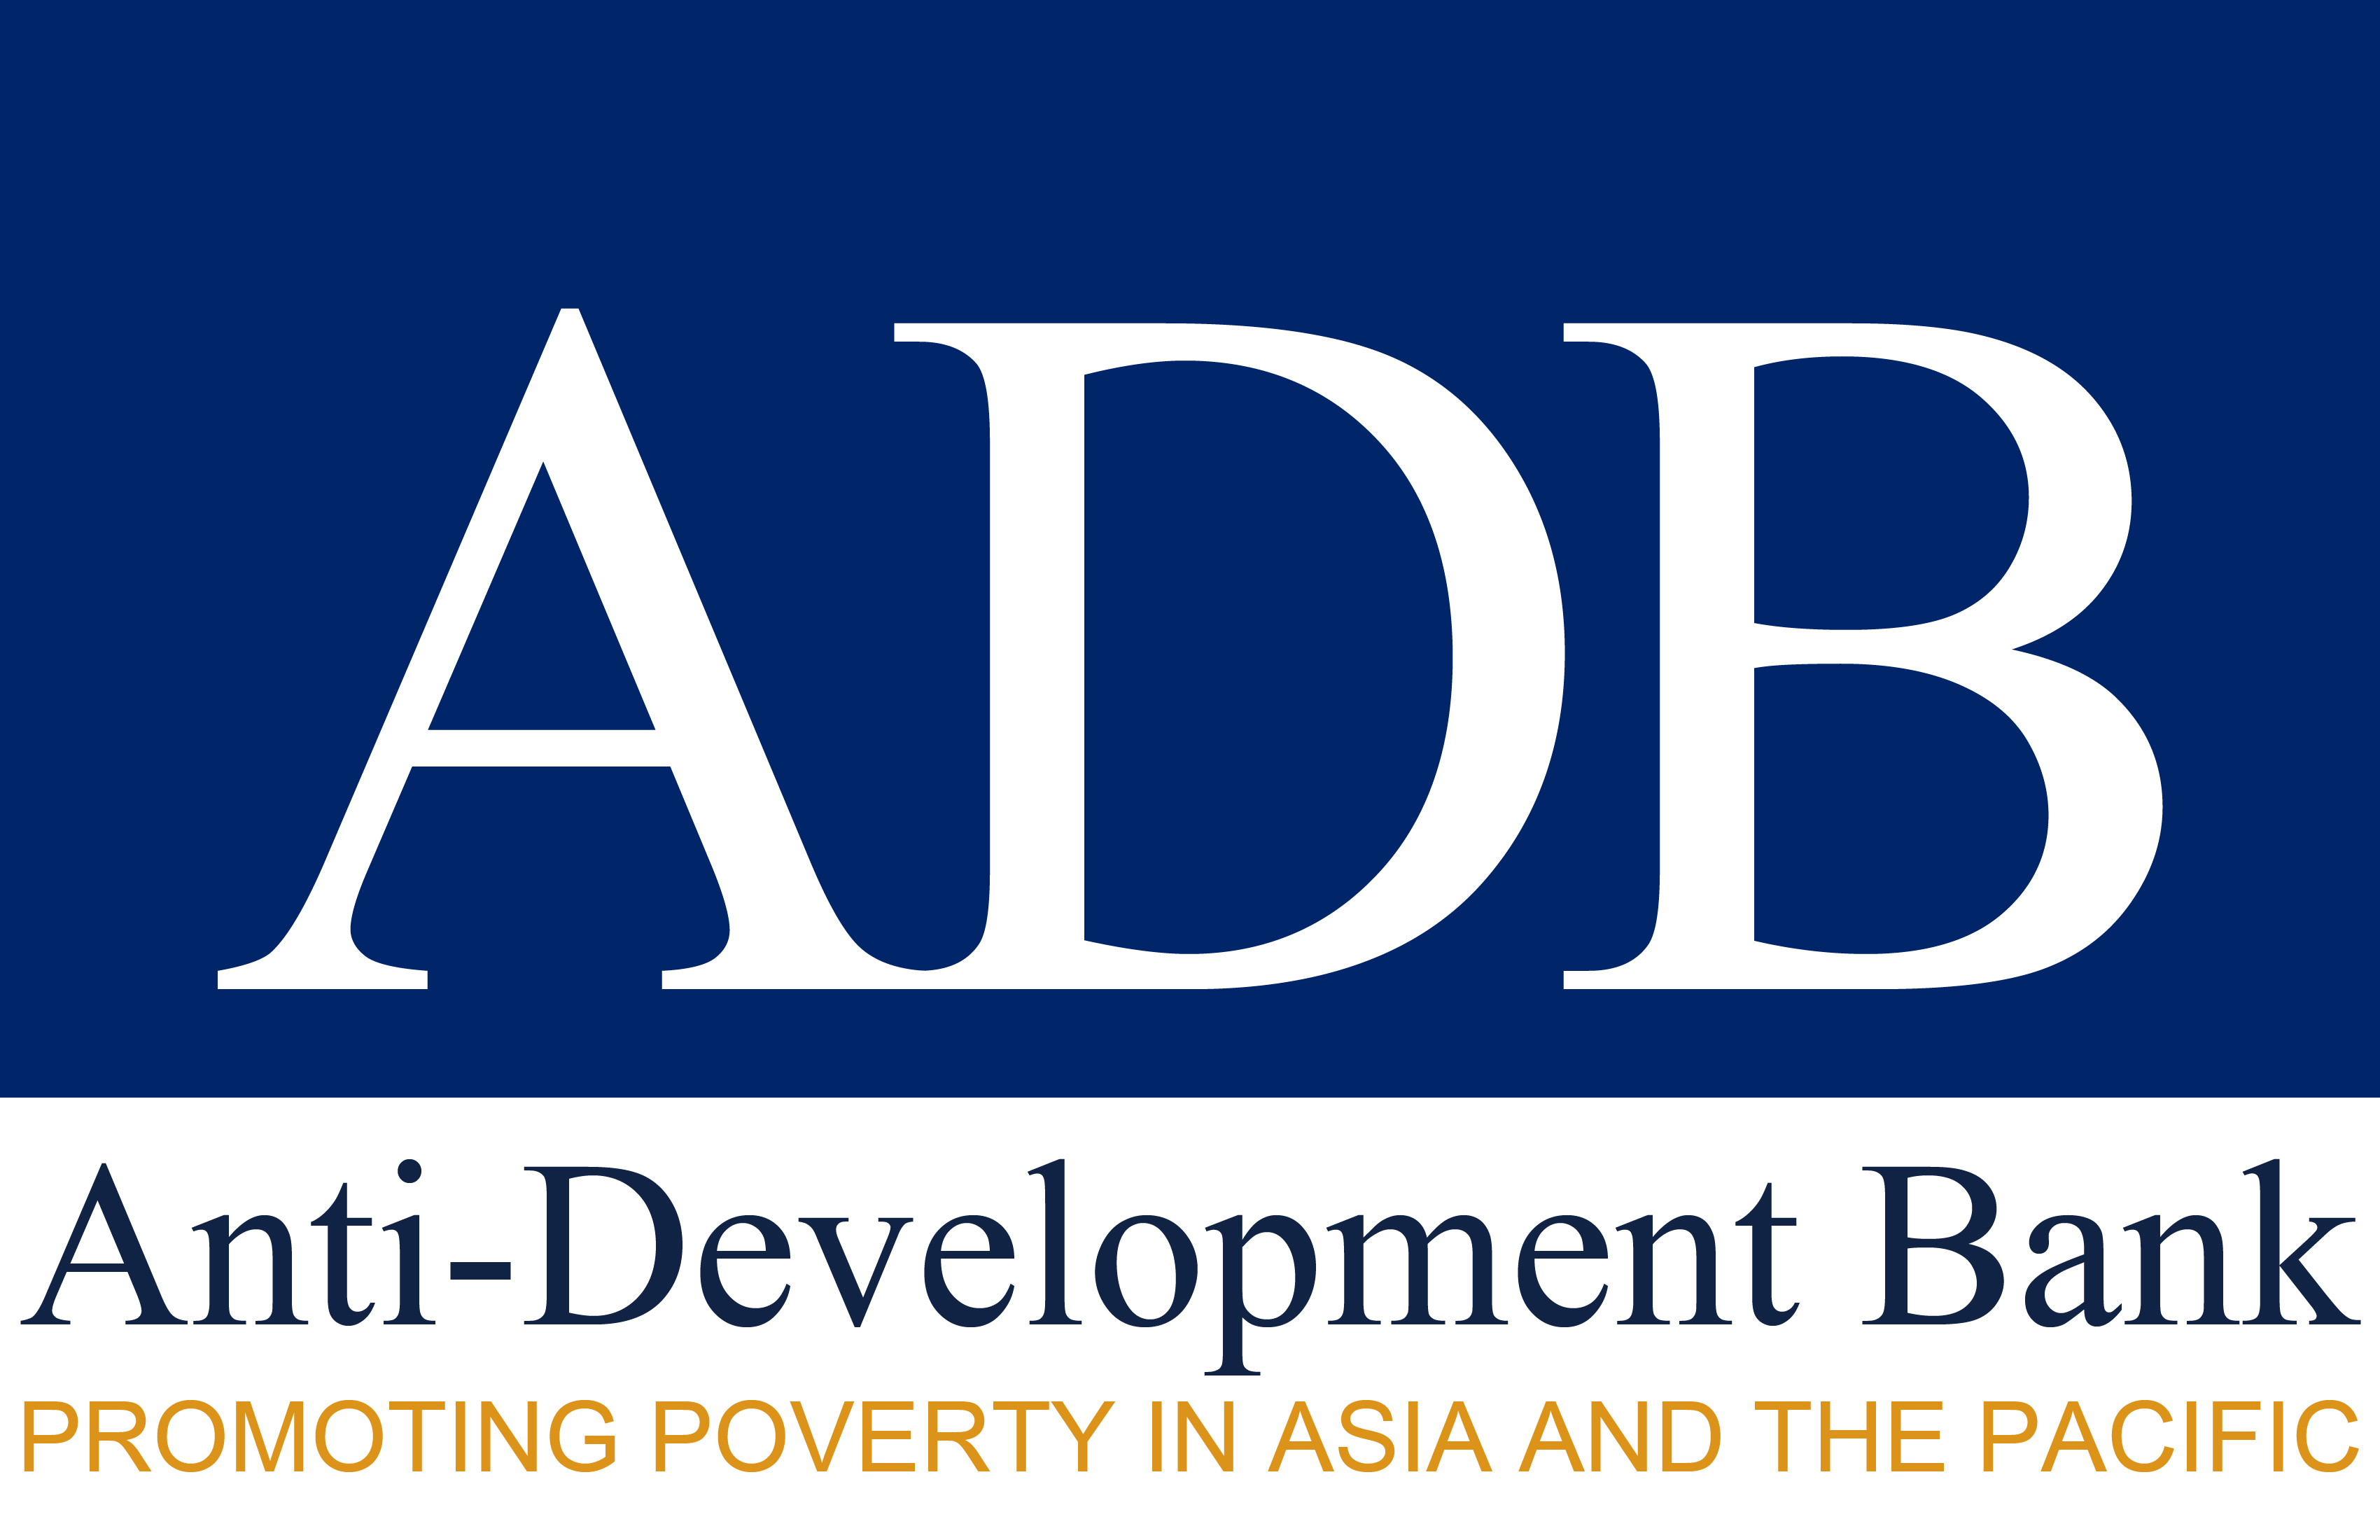 Developing Asia to grow just 0.1% in 2020